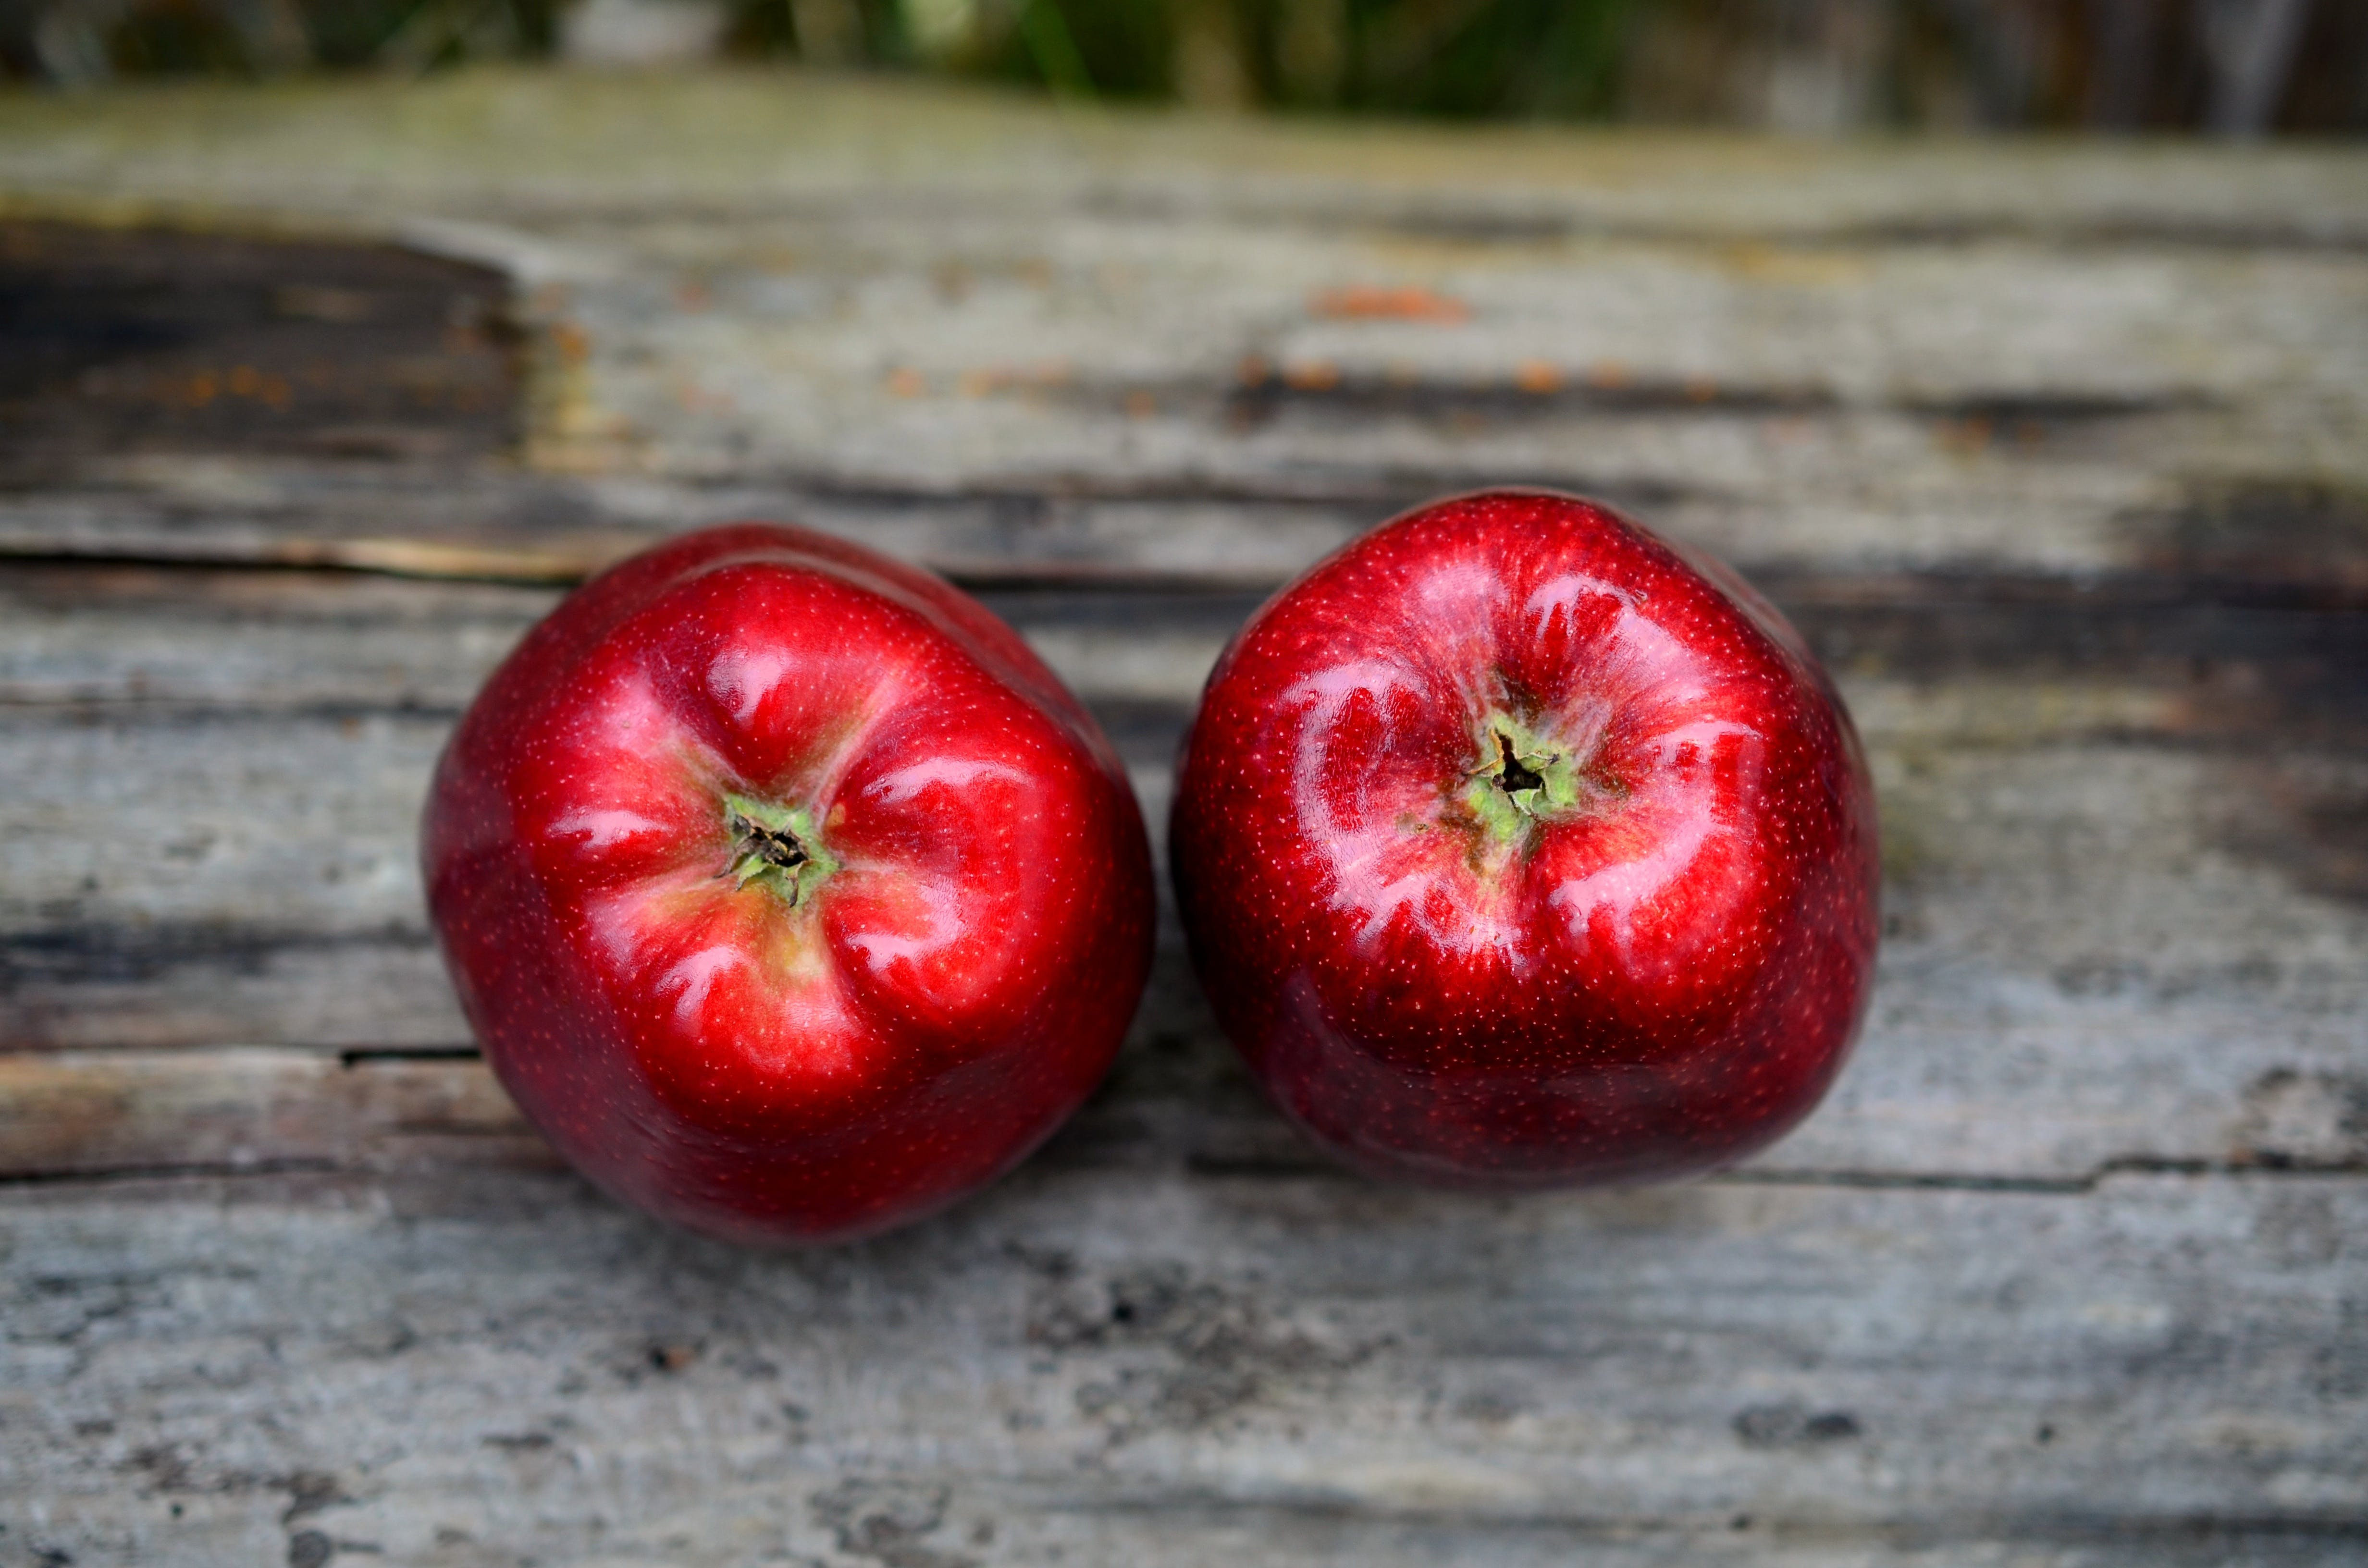 Two Red Fruits on Gray Wooden Surface